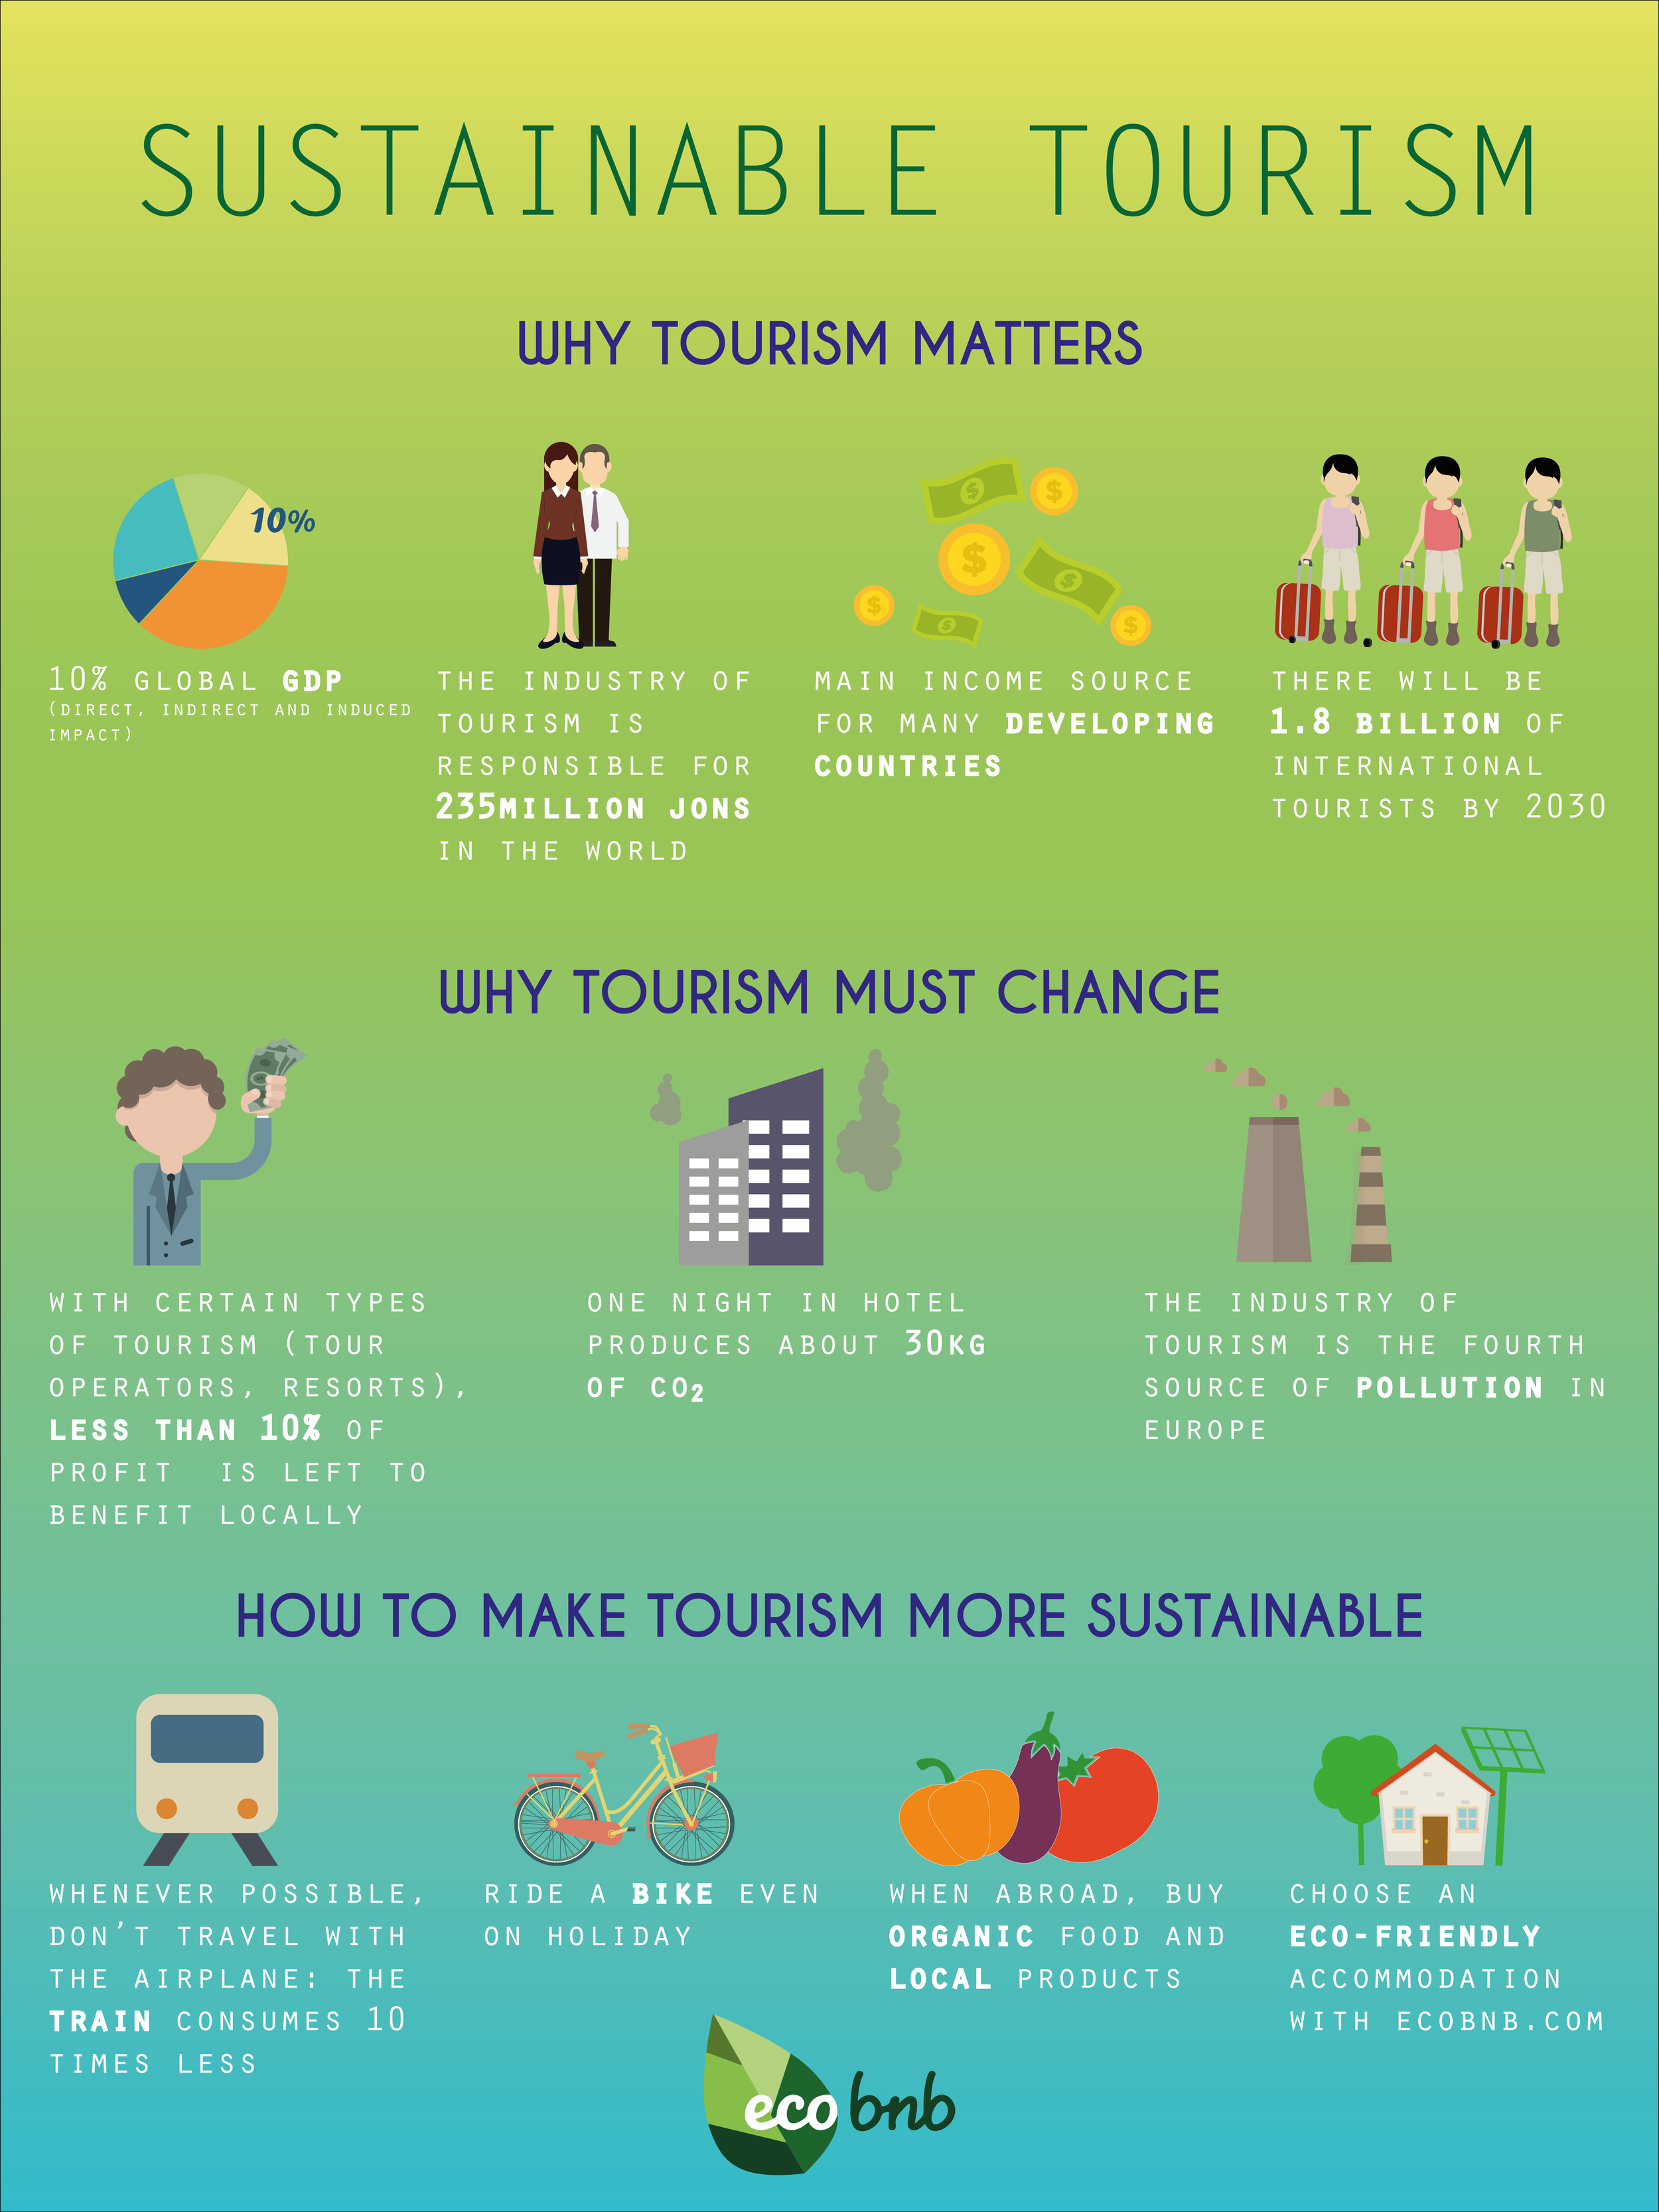 What is sustainable tourism and why does it matter? Find out more abut ecotourism. Buy Local.